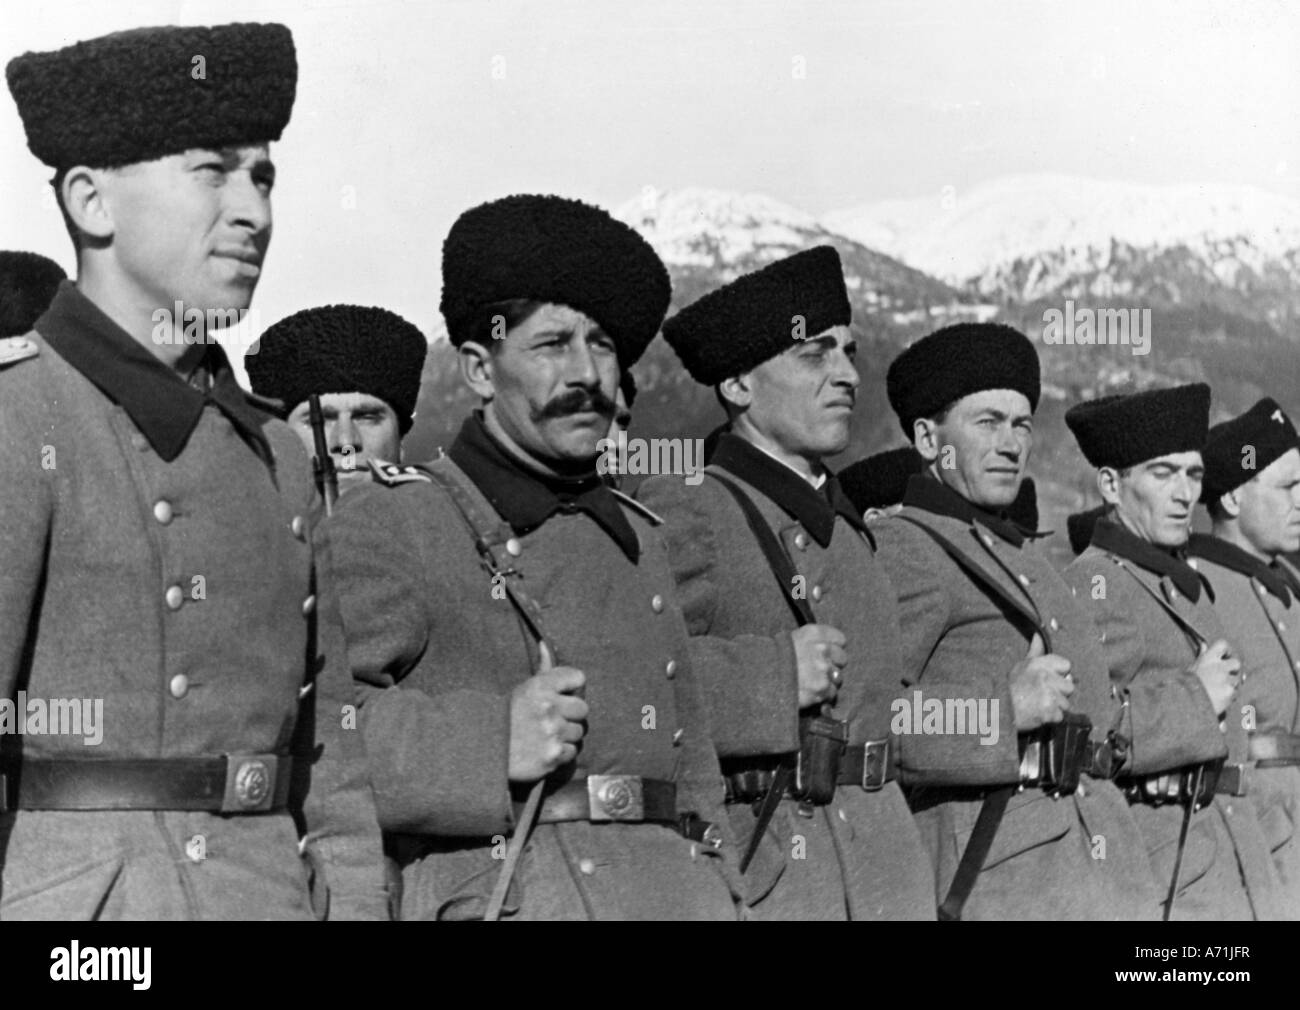 events, Second World War / WWII, foreigners in German service, cossacks, Russia, 1943, Additional-Rights-Clearances - Stock Image